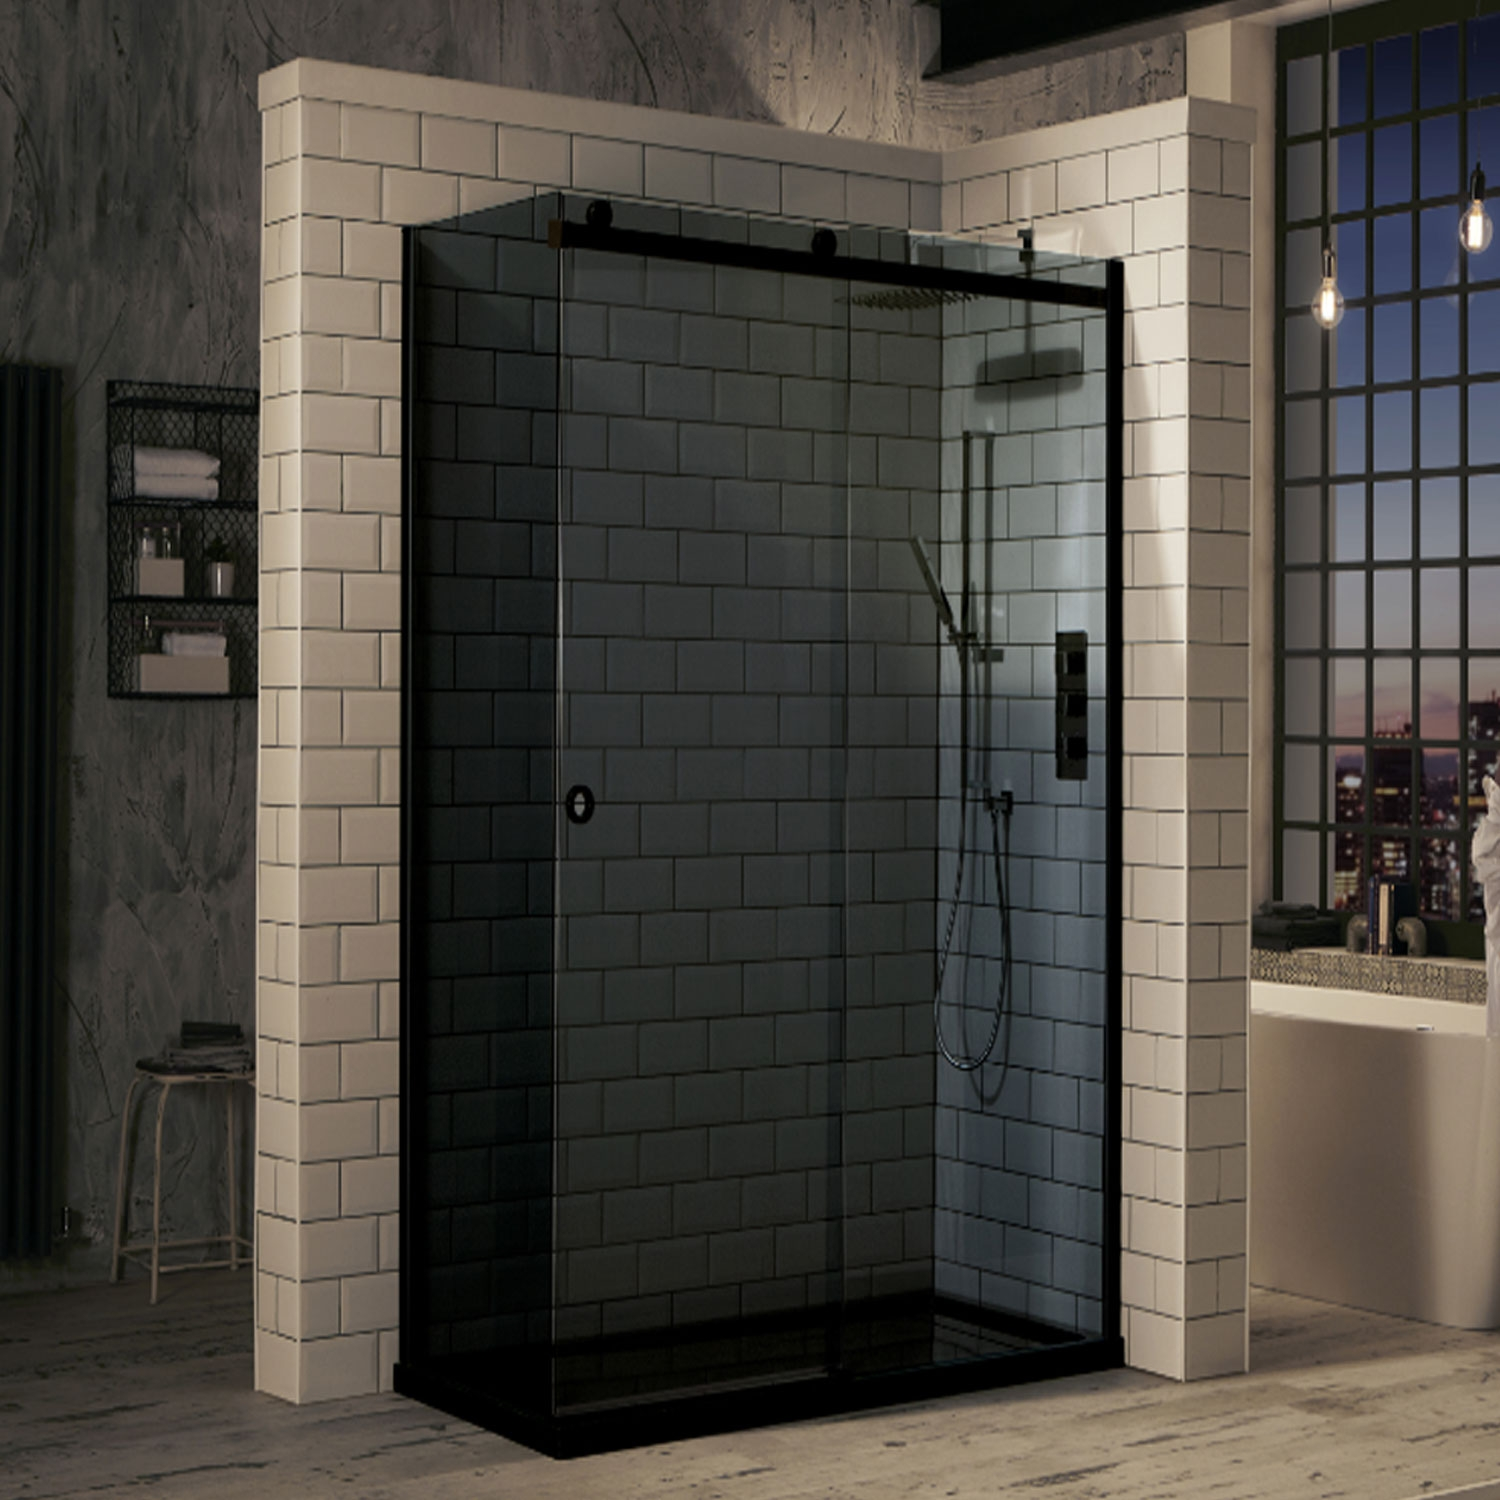 Verona Aquaglass+ Sphere Tinted Sliding Shower Door 1200mm Wide - 8mm Glass